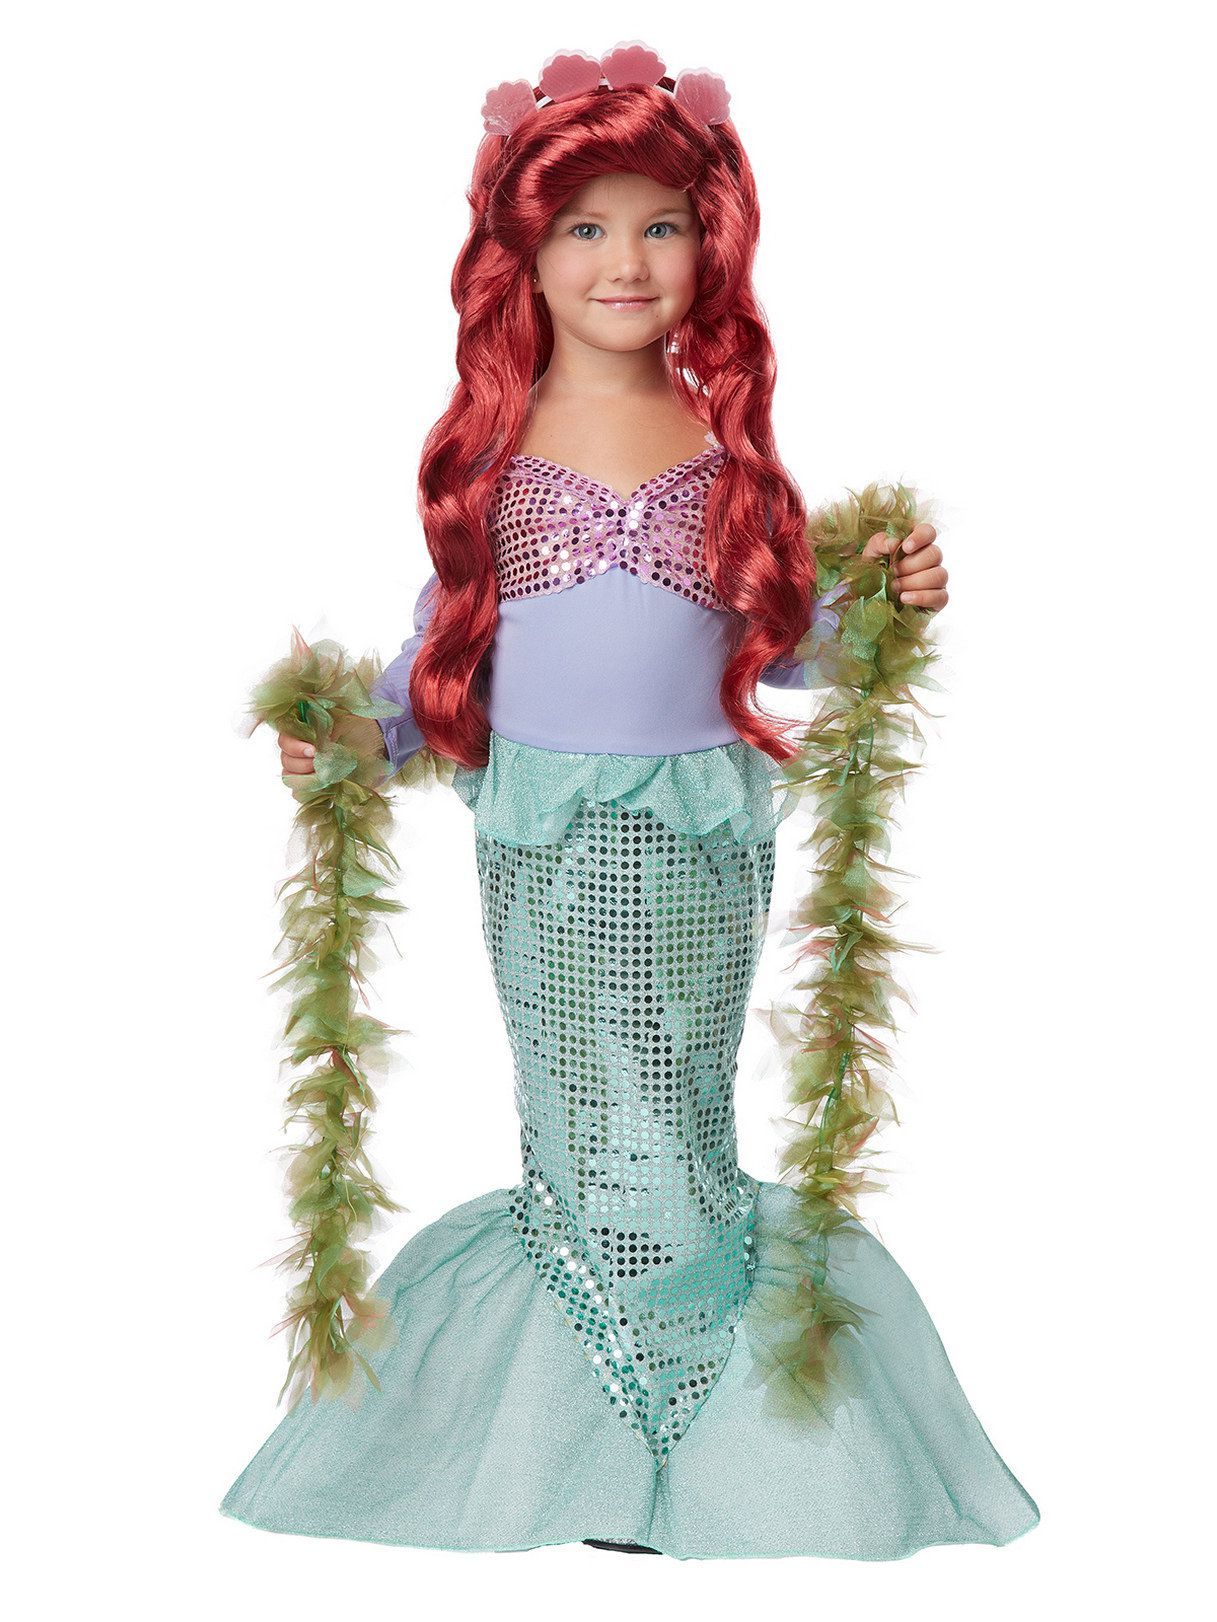 Lil` Mermaid Costume for Toddler  sc 1 st  Wholesale Halloween Costumes & Lil` Mermaid Costume for Toddler - Baby/Toddler Costumes for 2018 ...